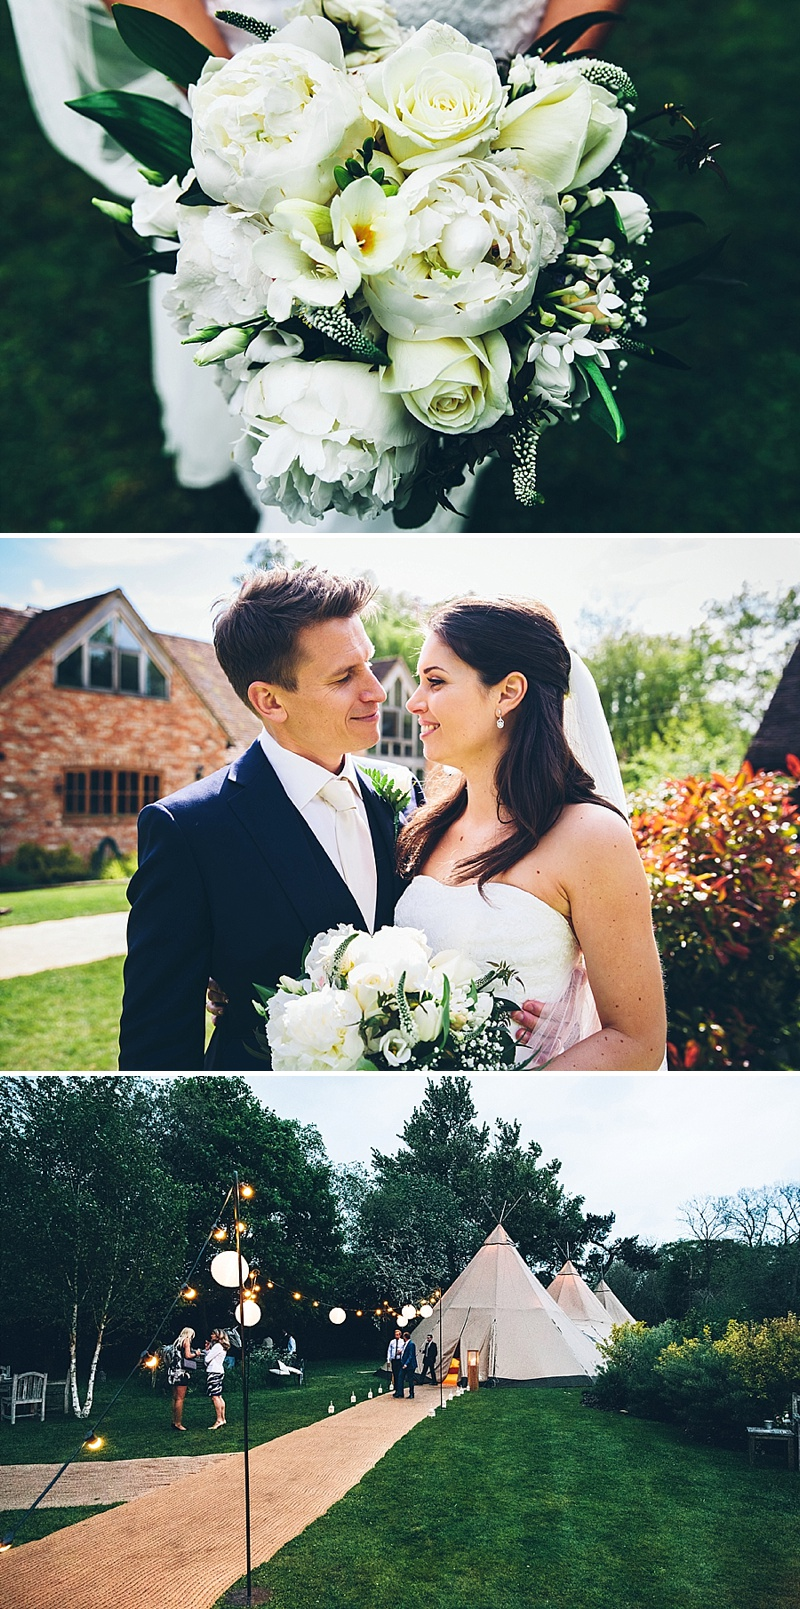 Outdoor Wedding In Oxfordshire With Papakata Tipis And Bride In Kyra By Maggie Sottero With Rachel Simpson Shoes And Groom In Bespoke Suit By Oxford House 1